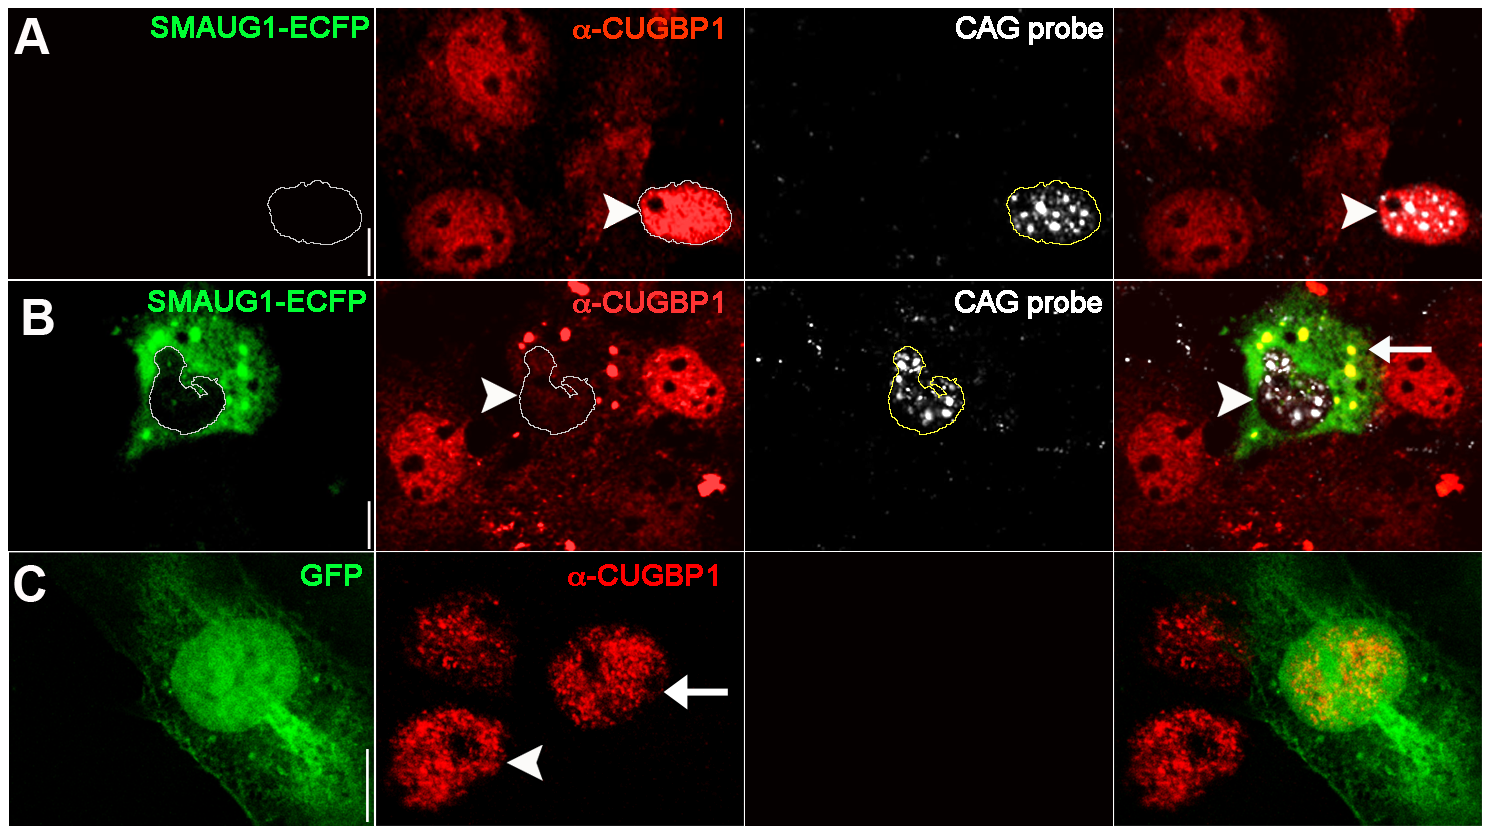 SMAUG1 expression reduces nuclear accumulation of CUGBP1, and both proteins co-localize in cytoplasmic granules.